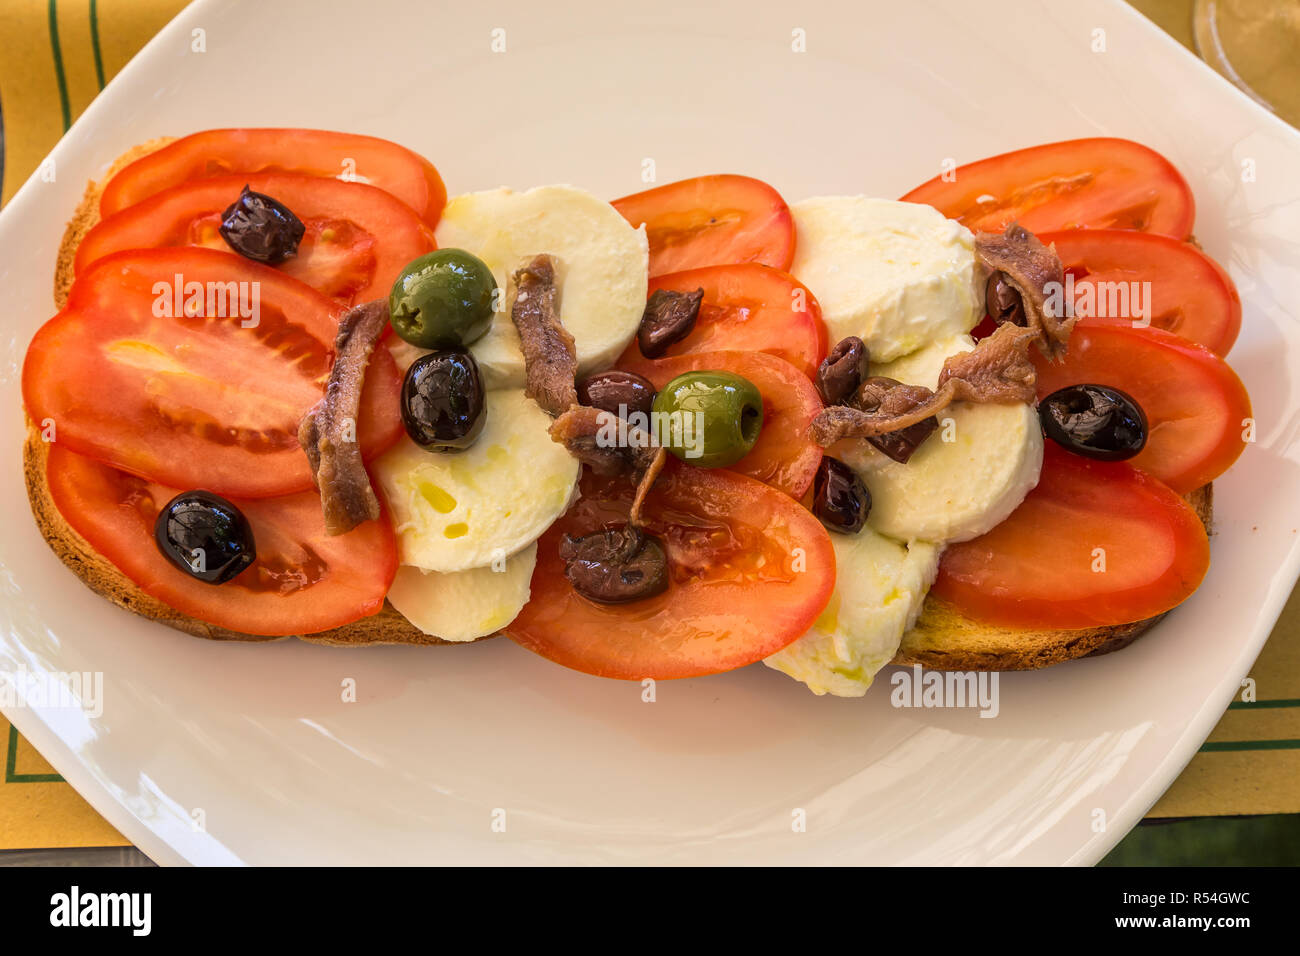 Lunchtime snack of tomatoes, cheese. anchovies and olives on bread, served on a white plate. - Stock Image